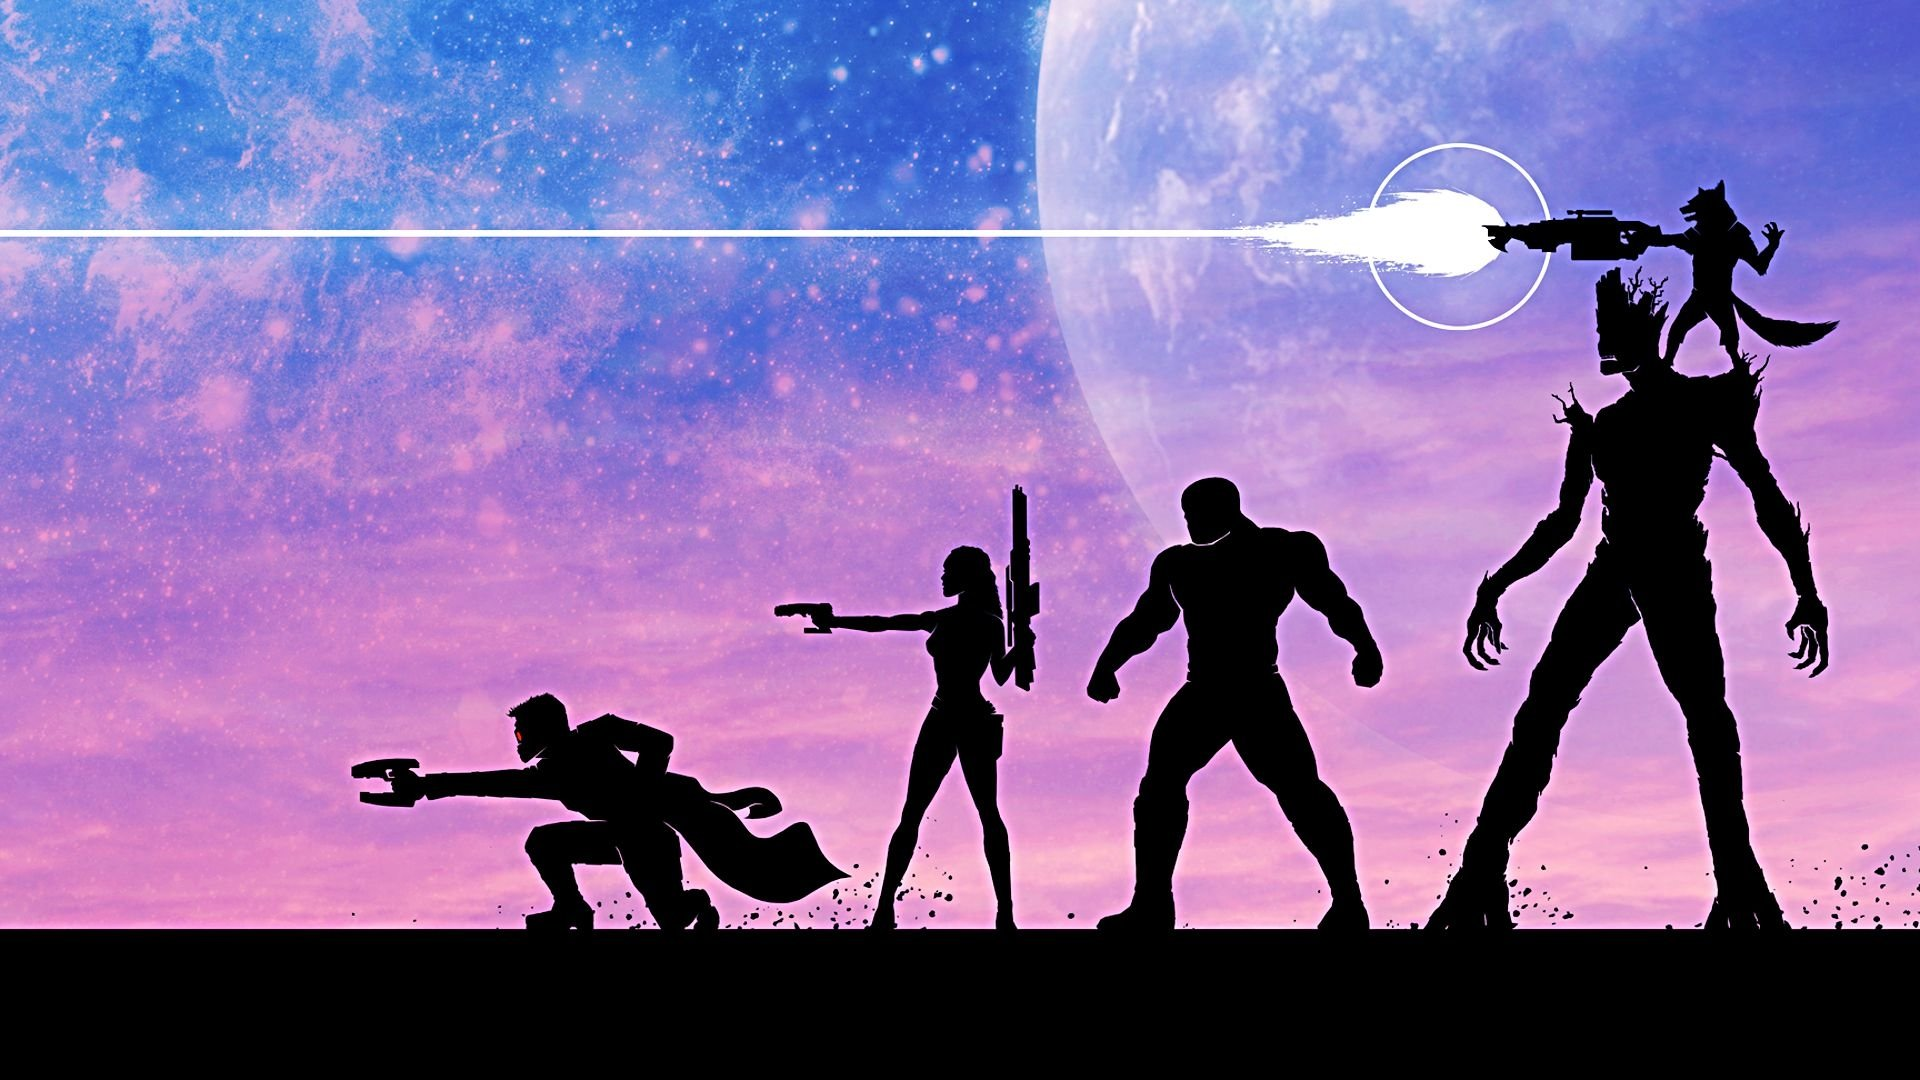 Movie - Guardians of the Galaxy  Groot Rocket Raccoon Drax The Destroyer Gamora Peter Quill Wallpaper